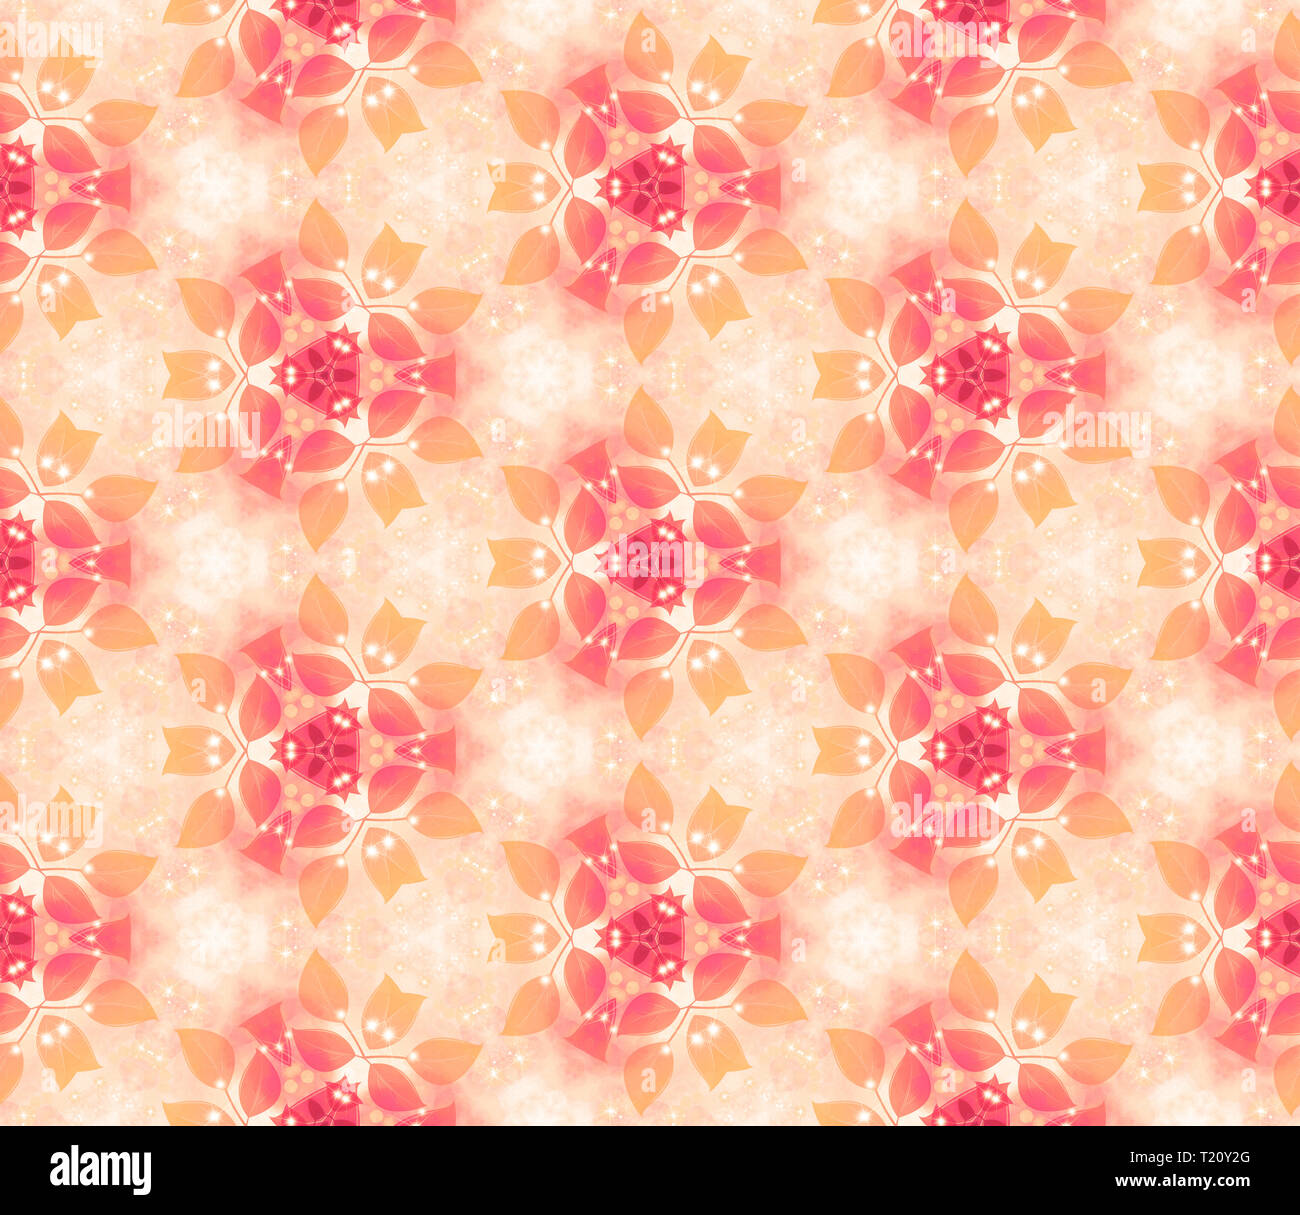 Seamless air pattern, gentle leaves, red-orange. Vegetable wall-paper in style of a fantasy. A romantic background for design, packing paper, greeting - Stock Image